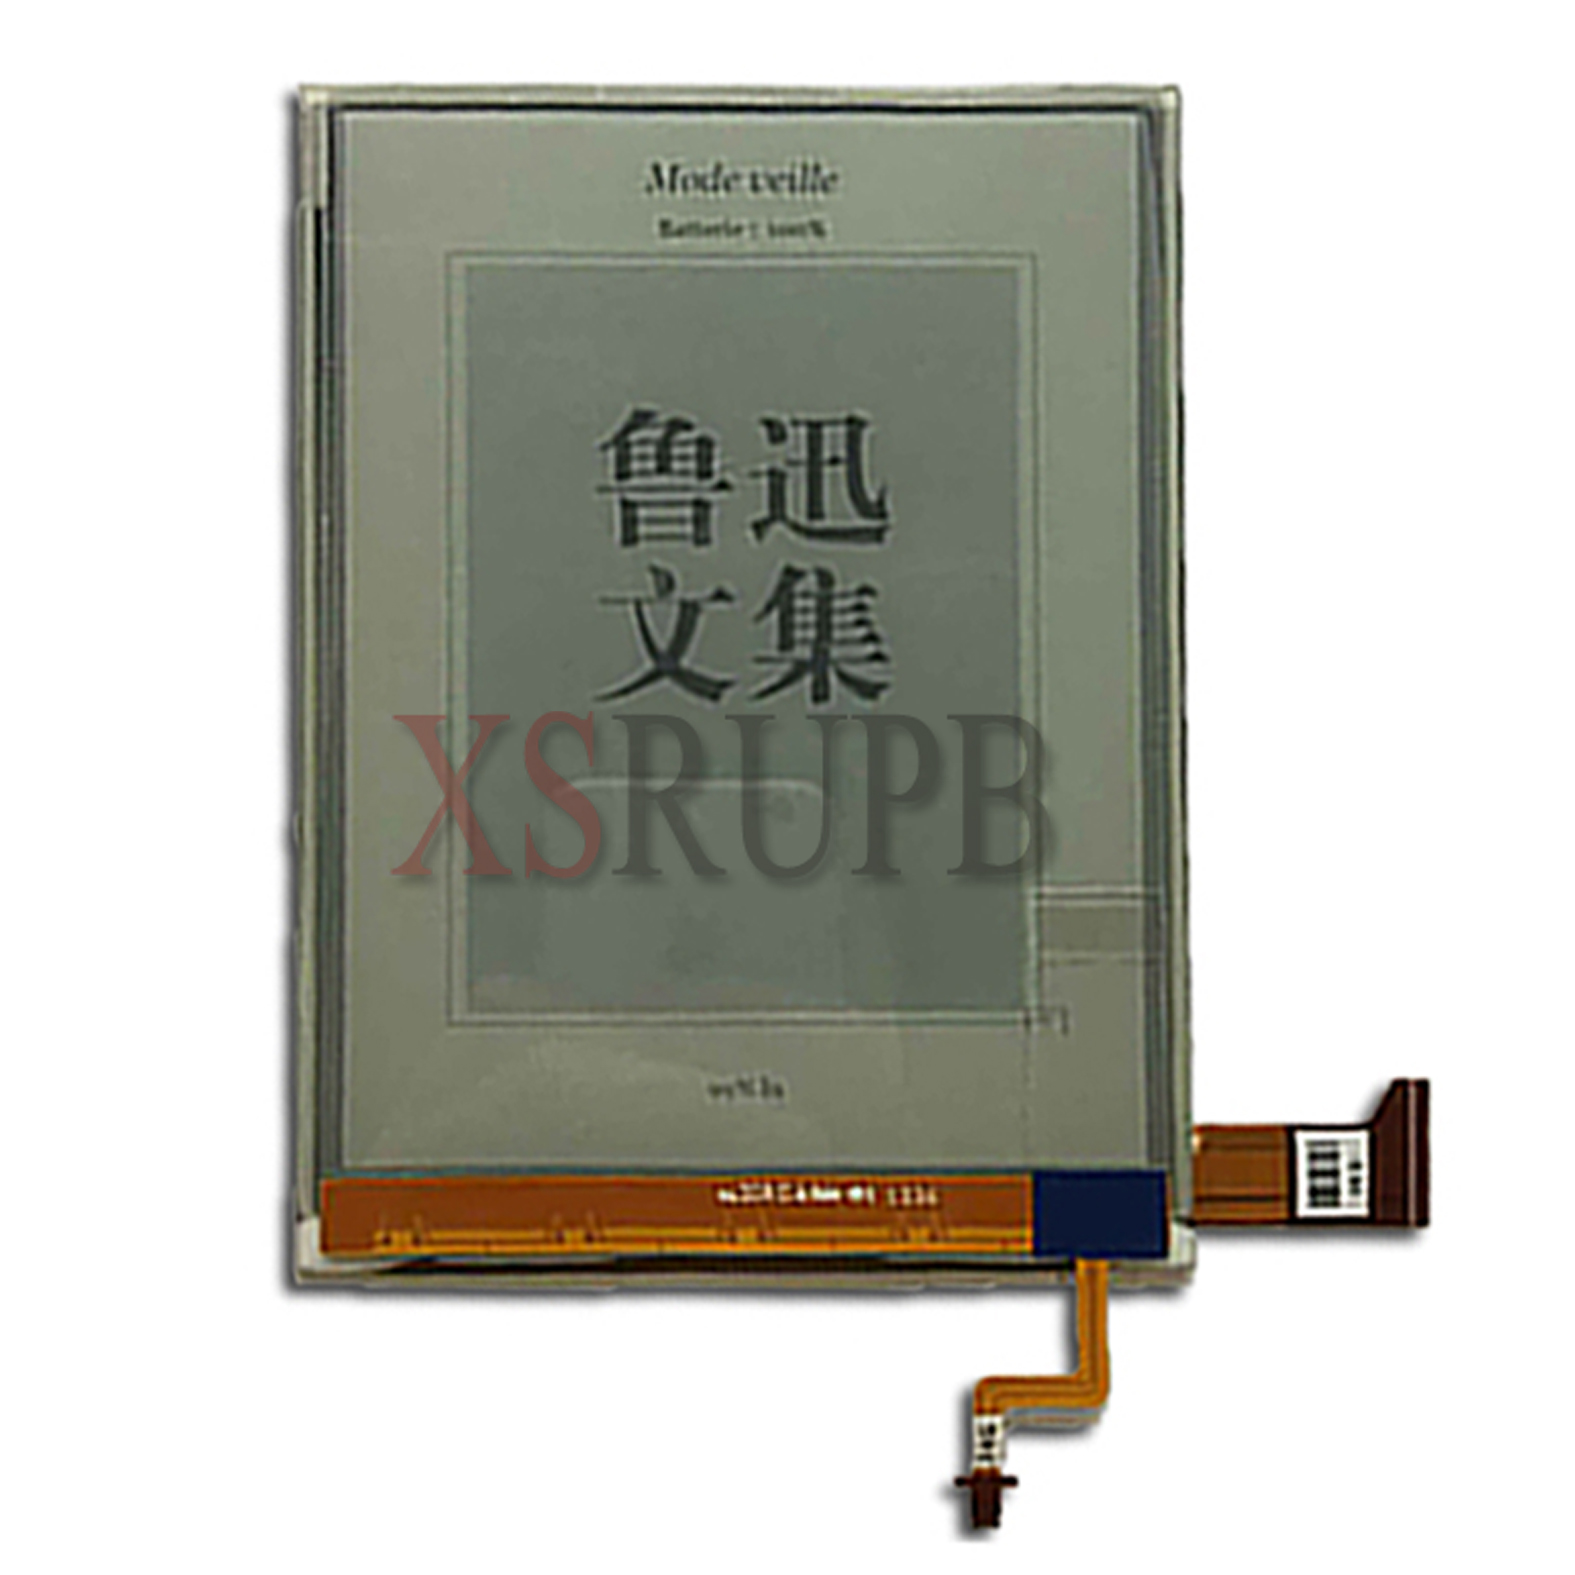 NEW Original 6inch 758*1024 E-ink Pearl HD Ebook Reader LCD Screen Display for ONYX BOOX C67SML E-book Reader Repair replacement lcd display screen for onyx boox a61s 6inch 800 600 e book lcd display screen free shipping